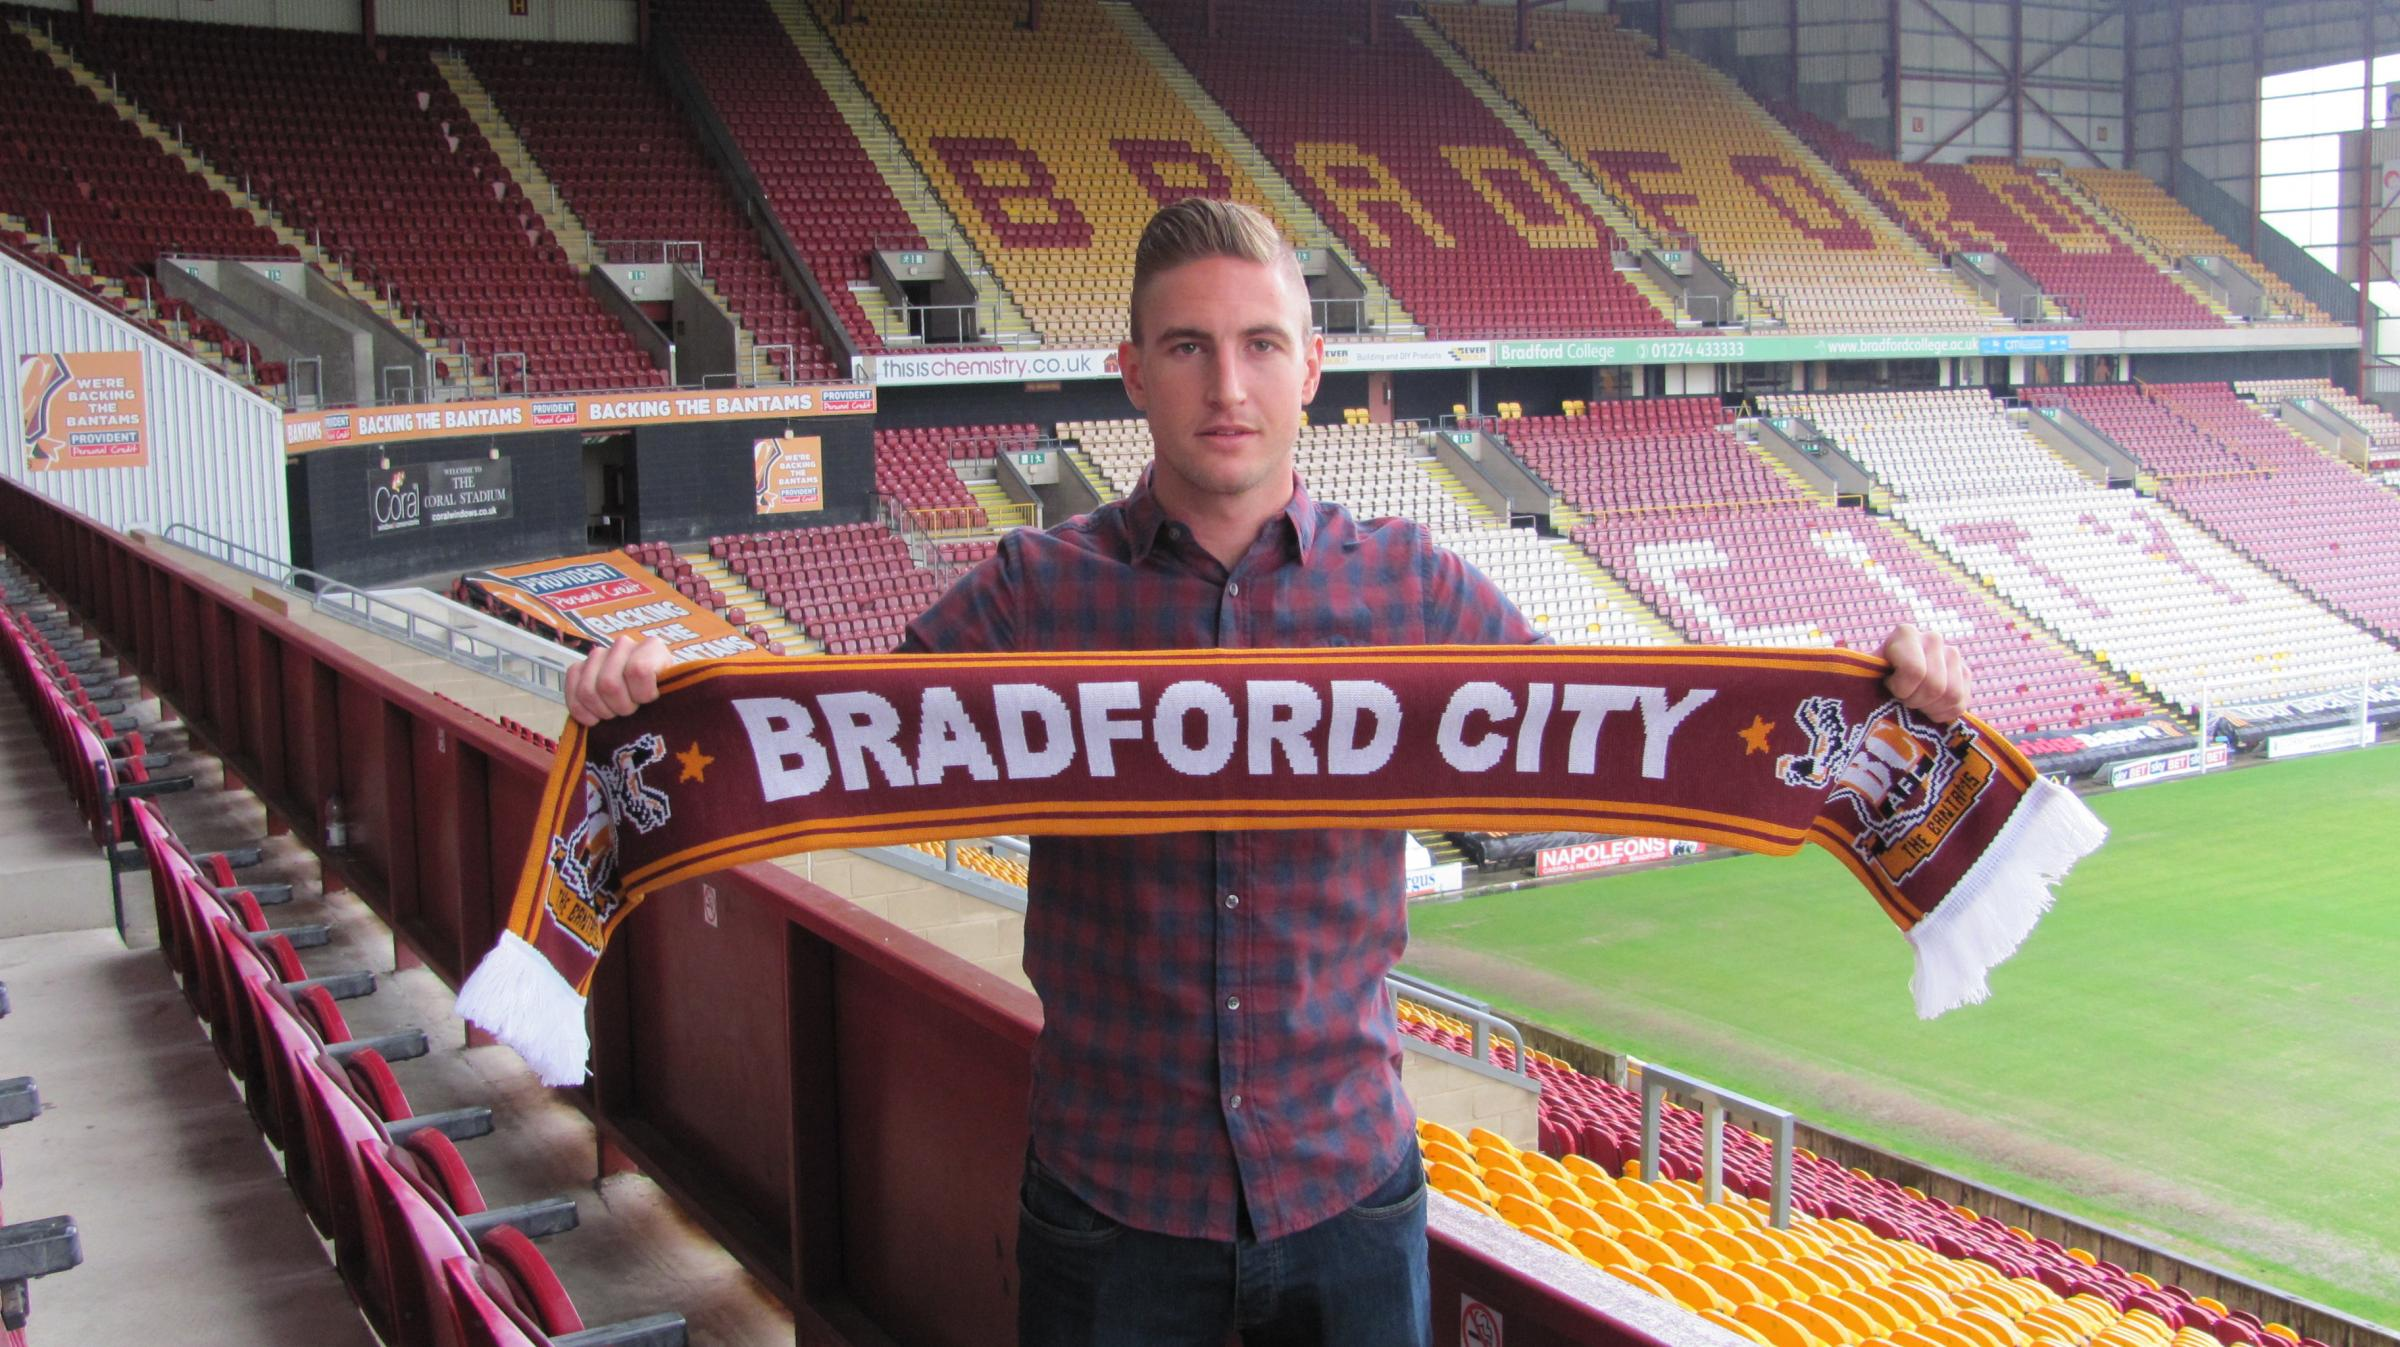 Bradford City: Day of comings and goings at Valley Parade